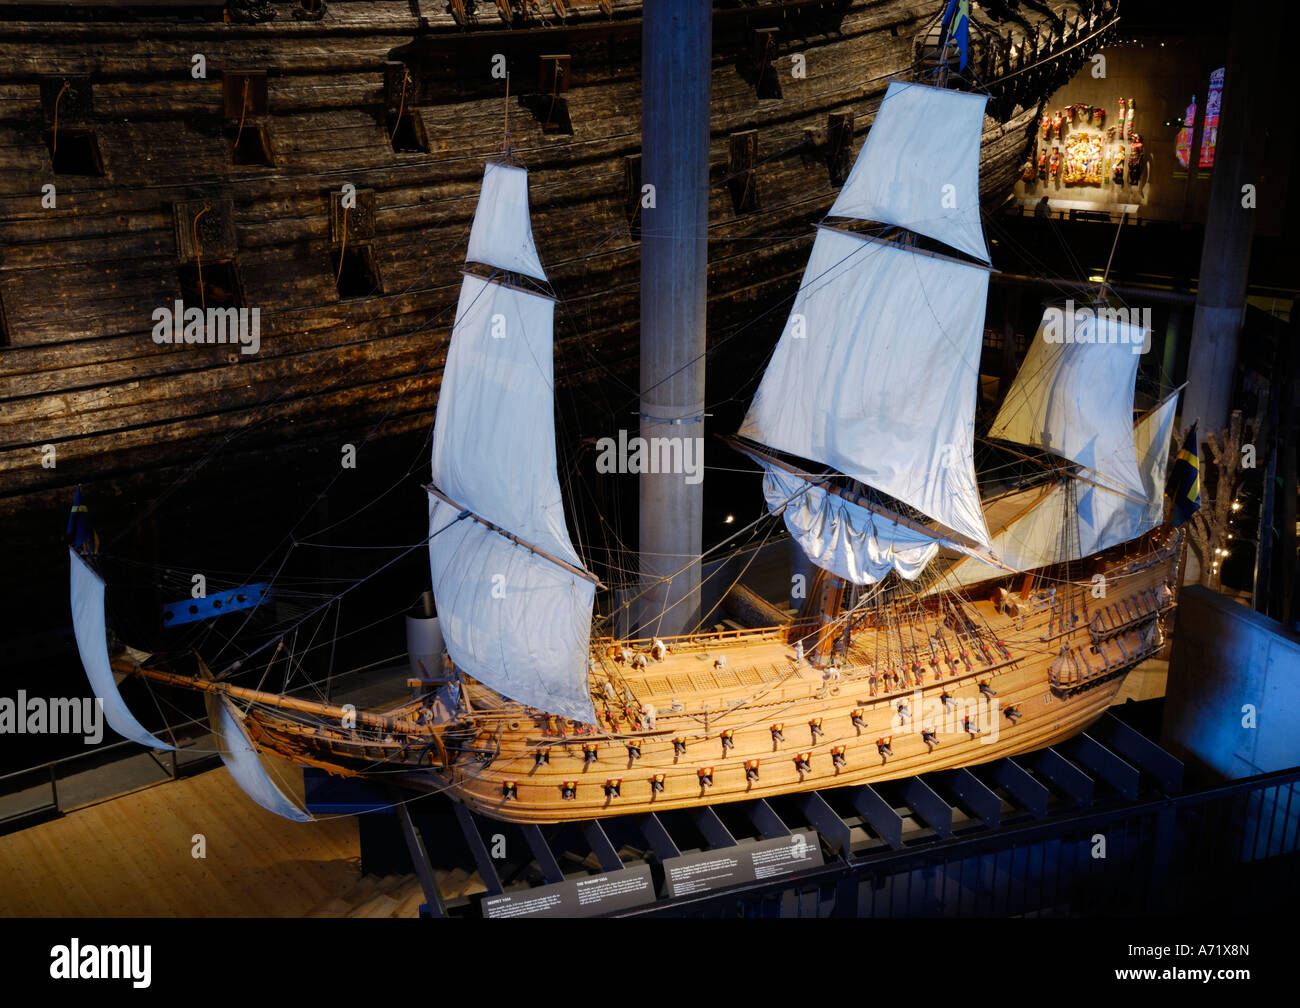 A 3 to 4 meters long model of the 17th century battleship Vasa real ship in the background at the Vasa museum in Stockholm Stock Photo